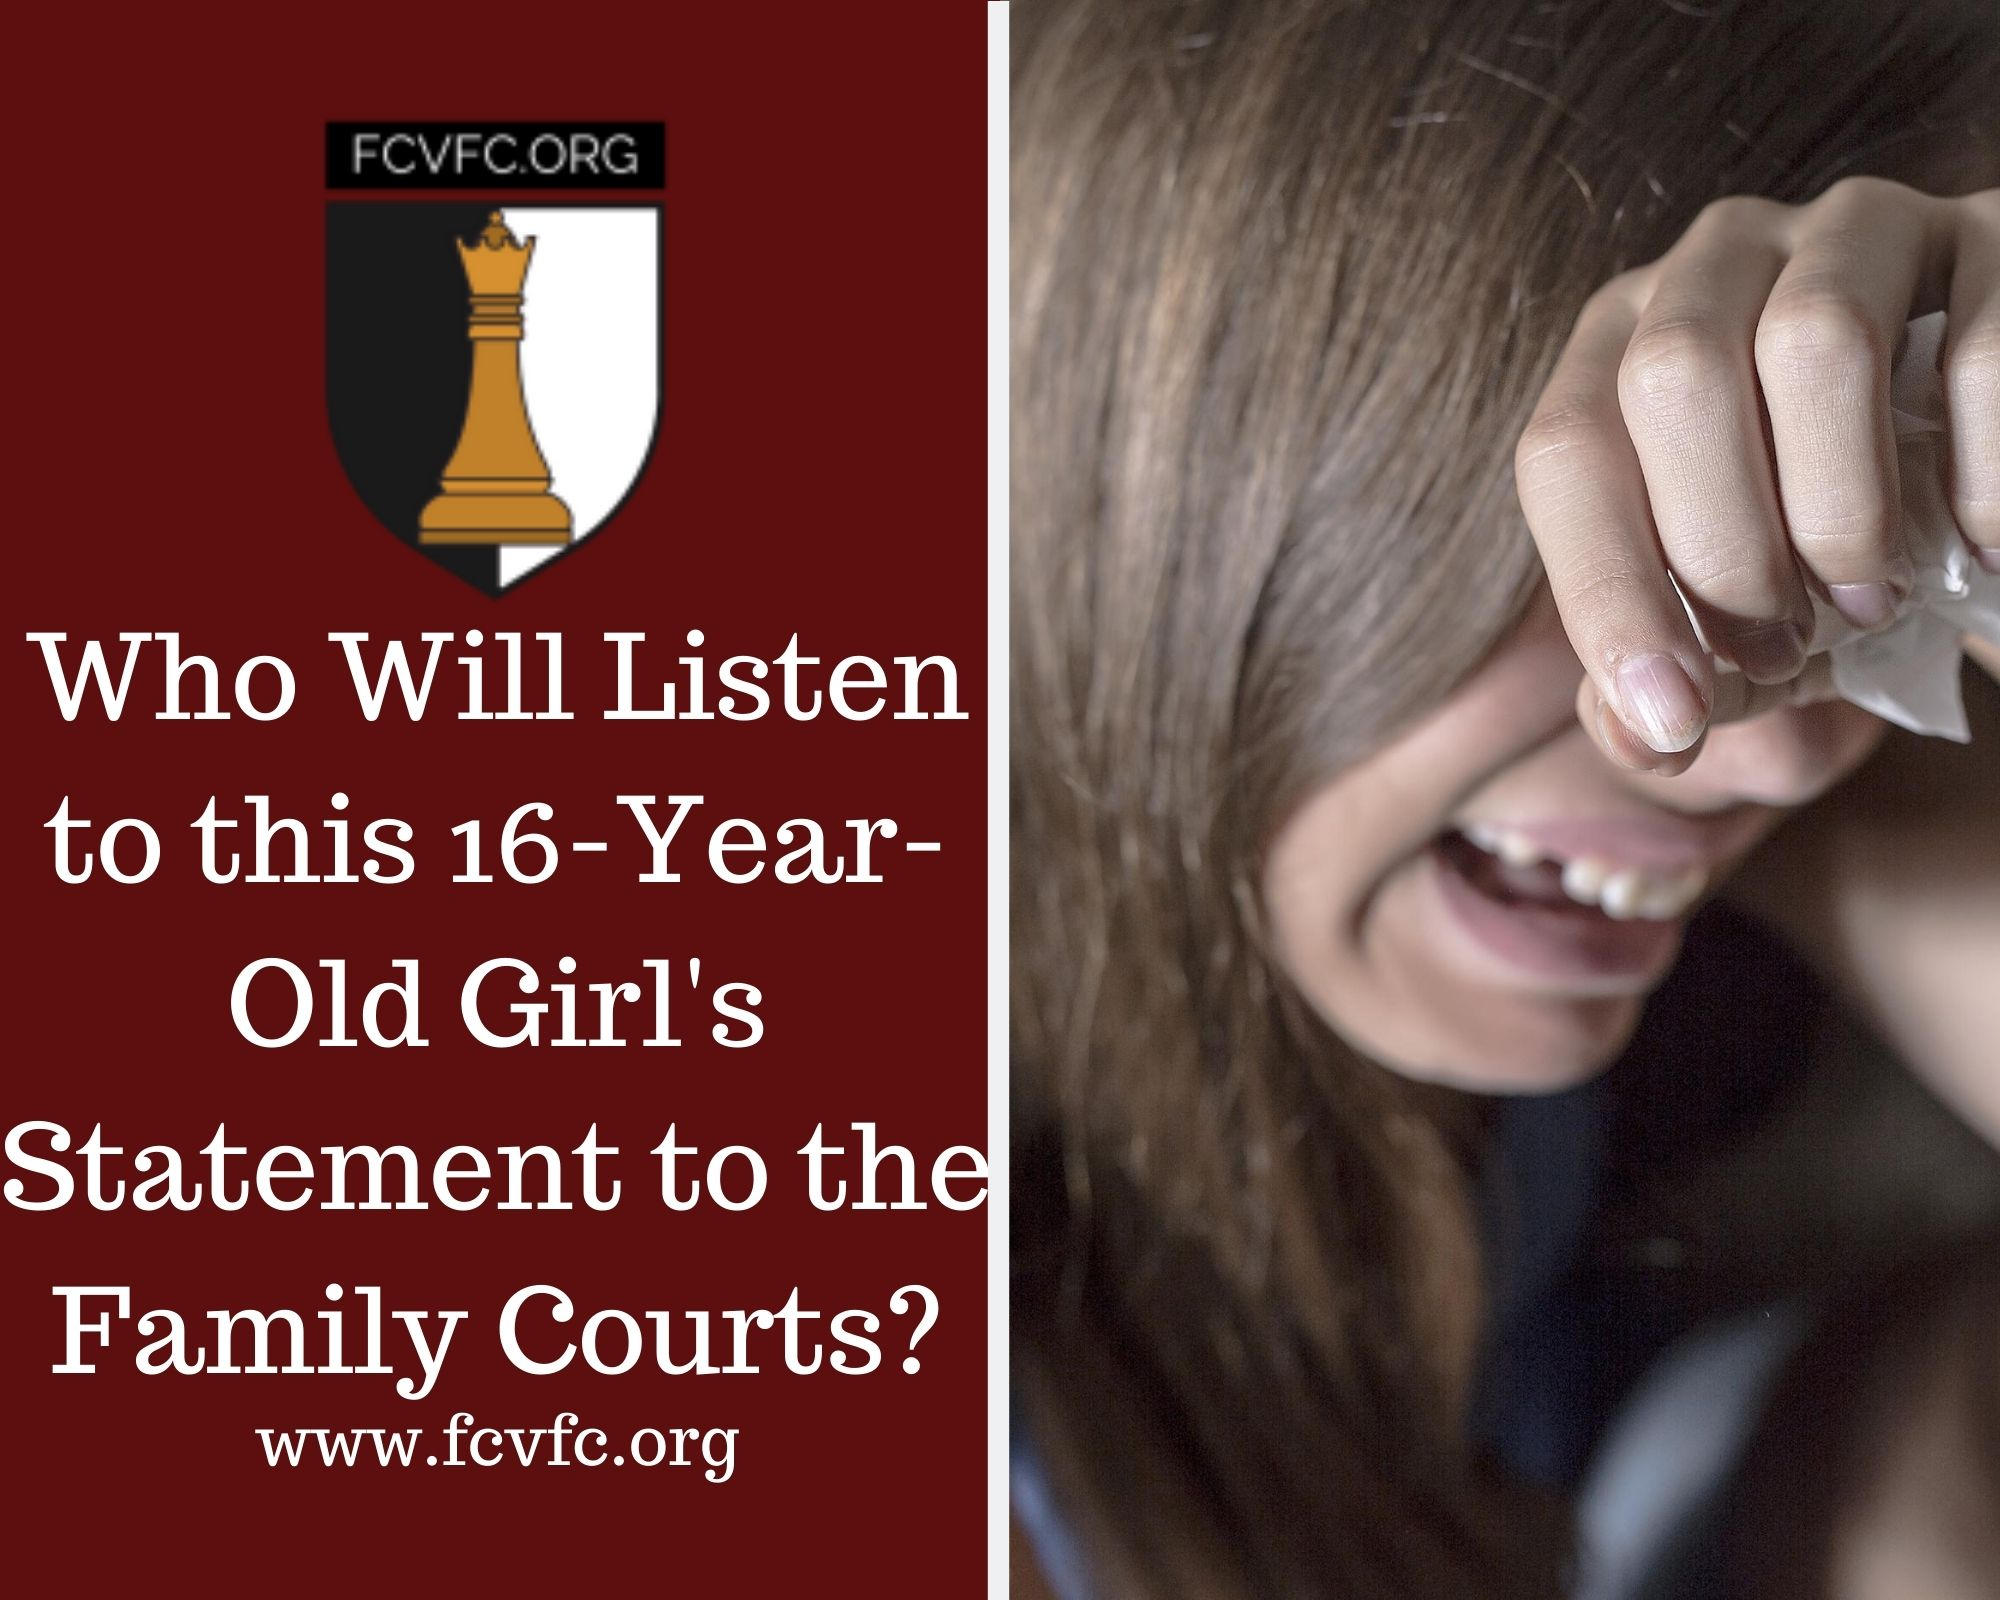 Who Will Listen to This 16-Year-Old Girl's Statement to the Family Courts?